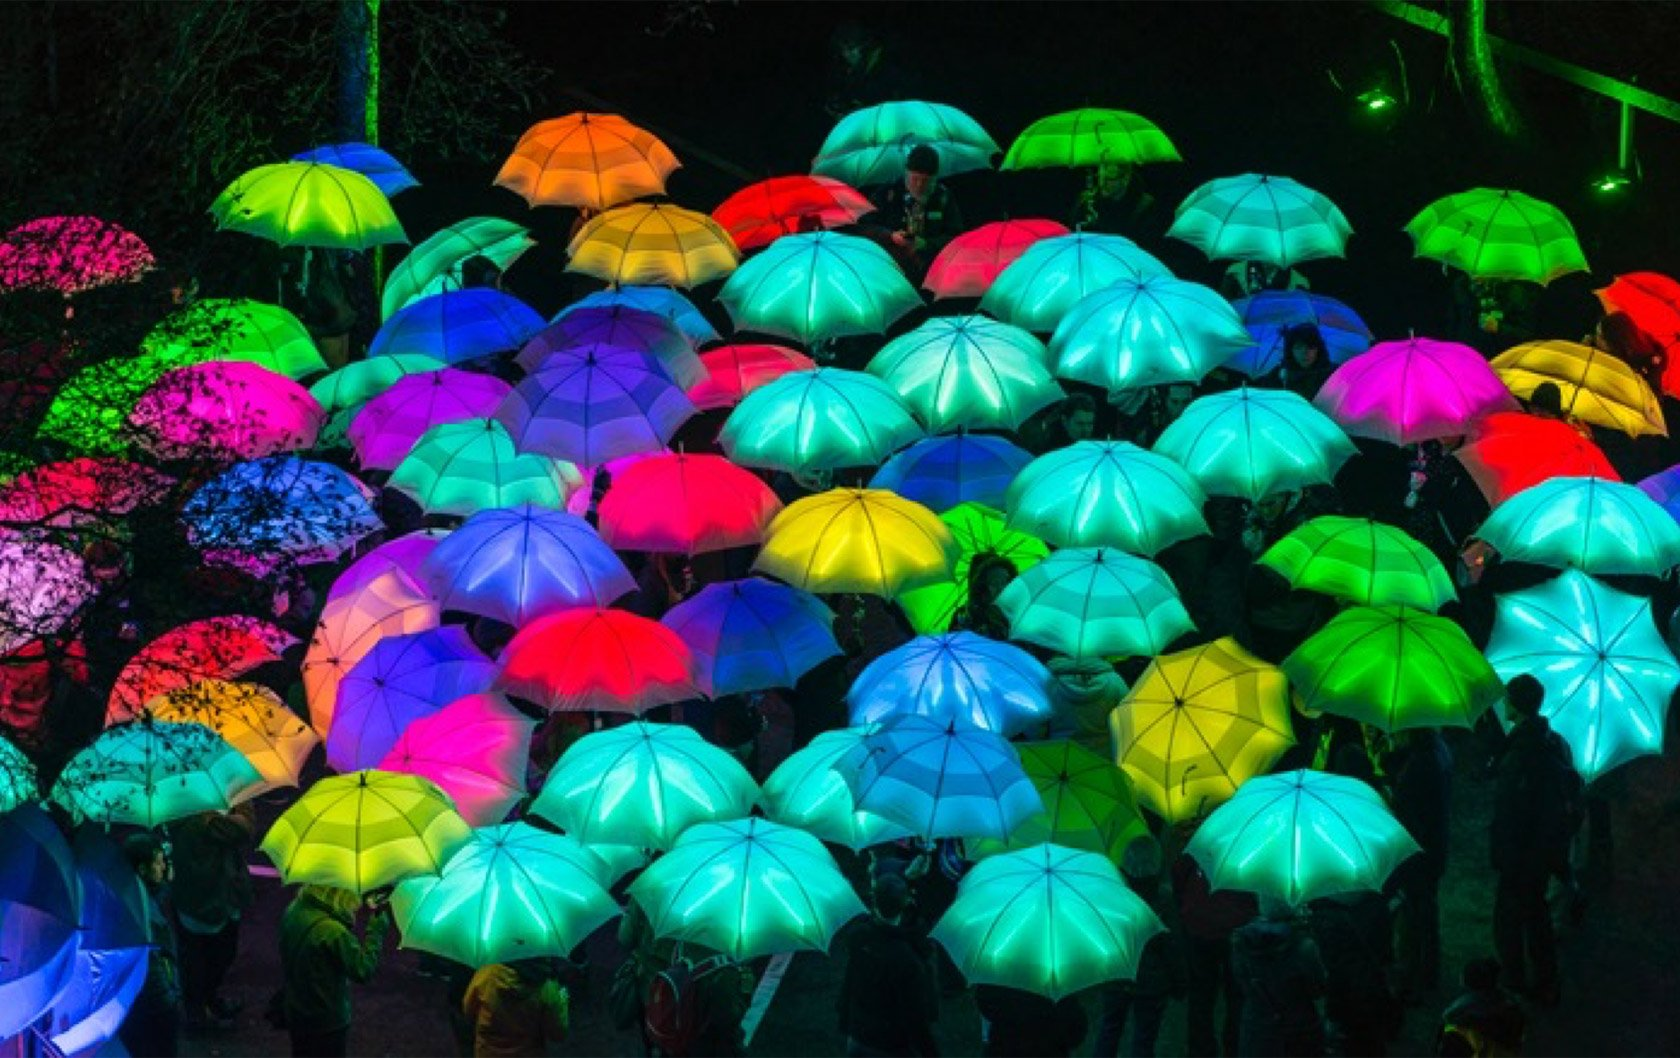 lumieres-cirque-bijou-umbrella-project